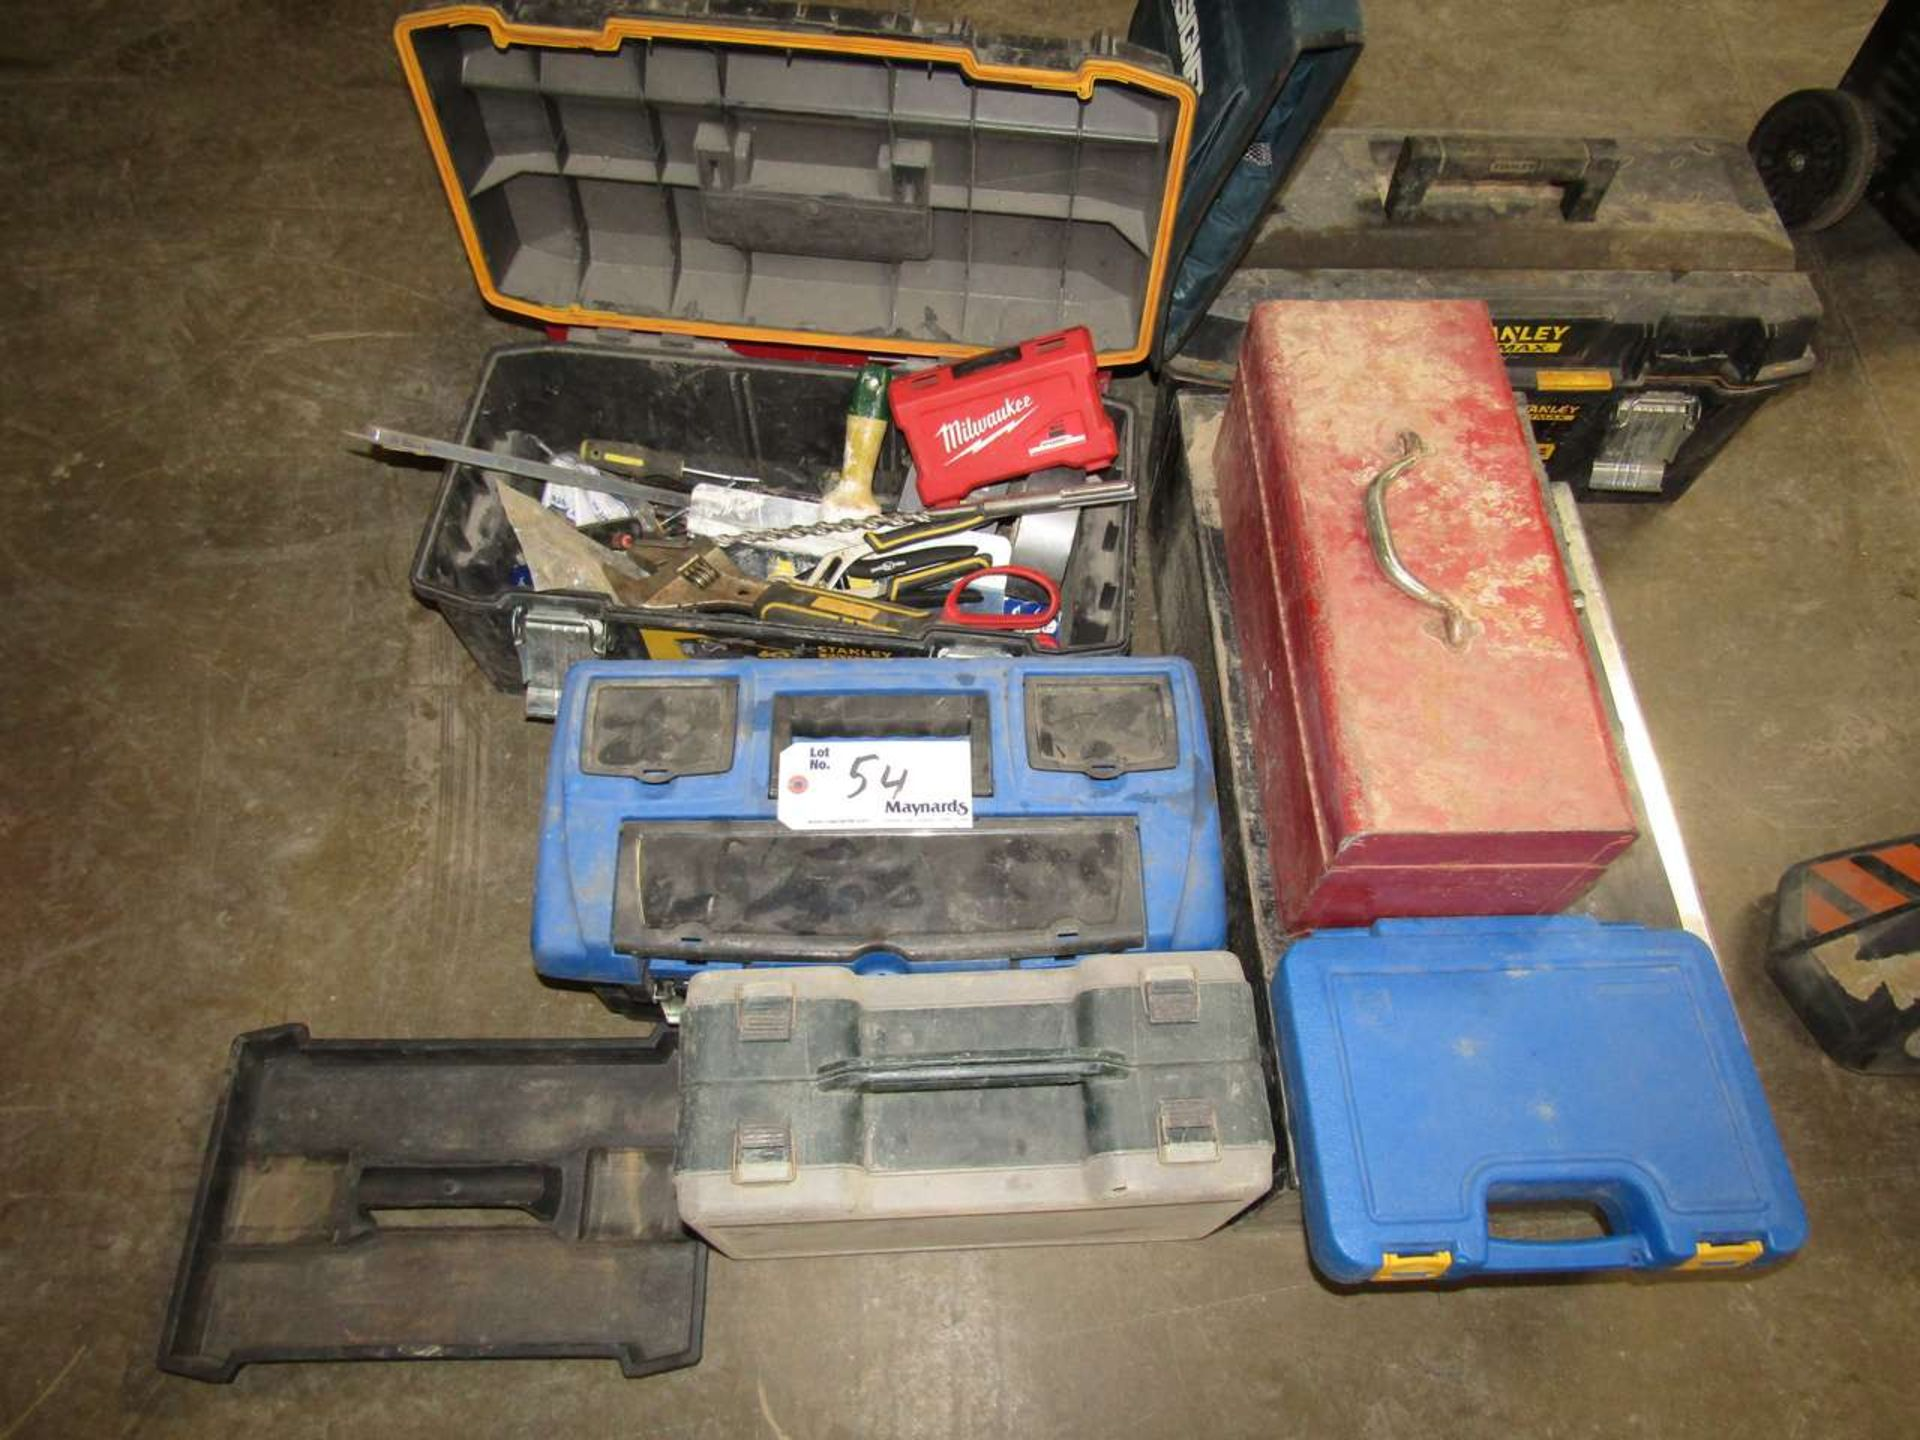 Lotto 54 - Approx.: 6 Tool Boxes/Cases